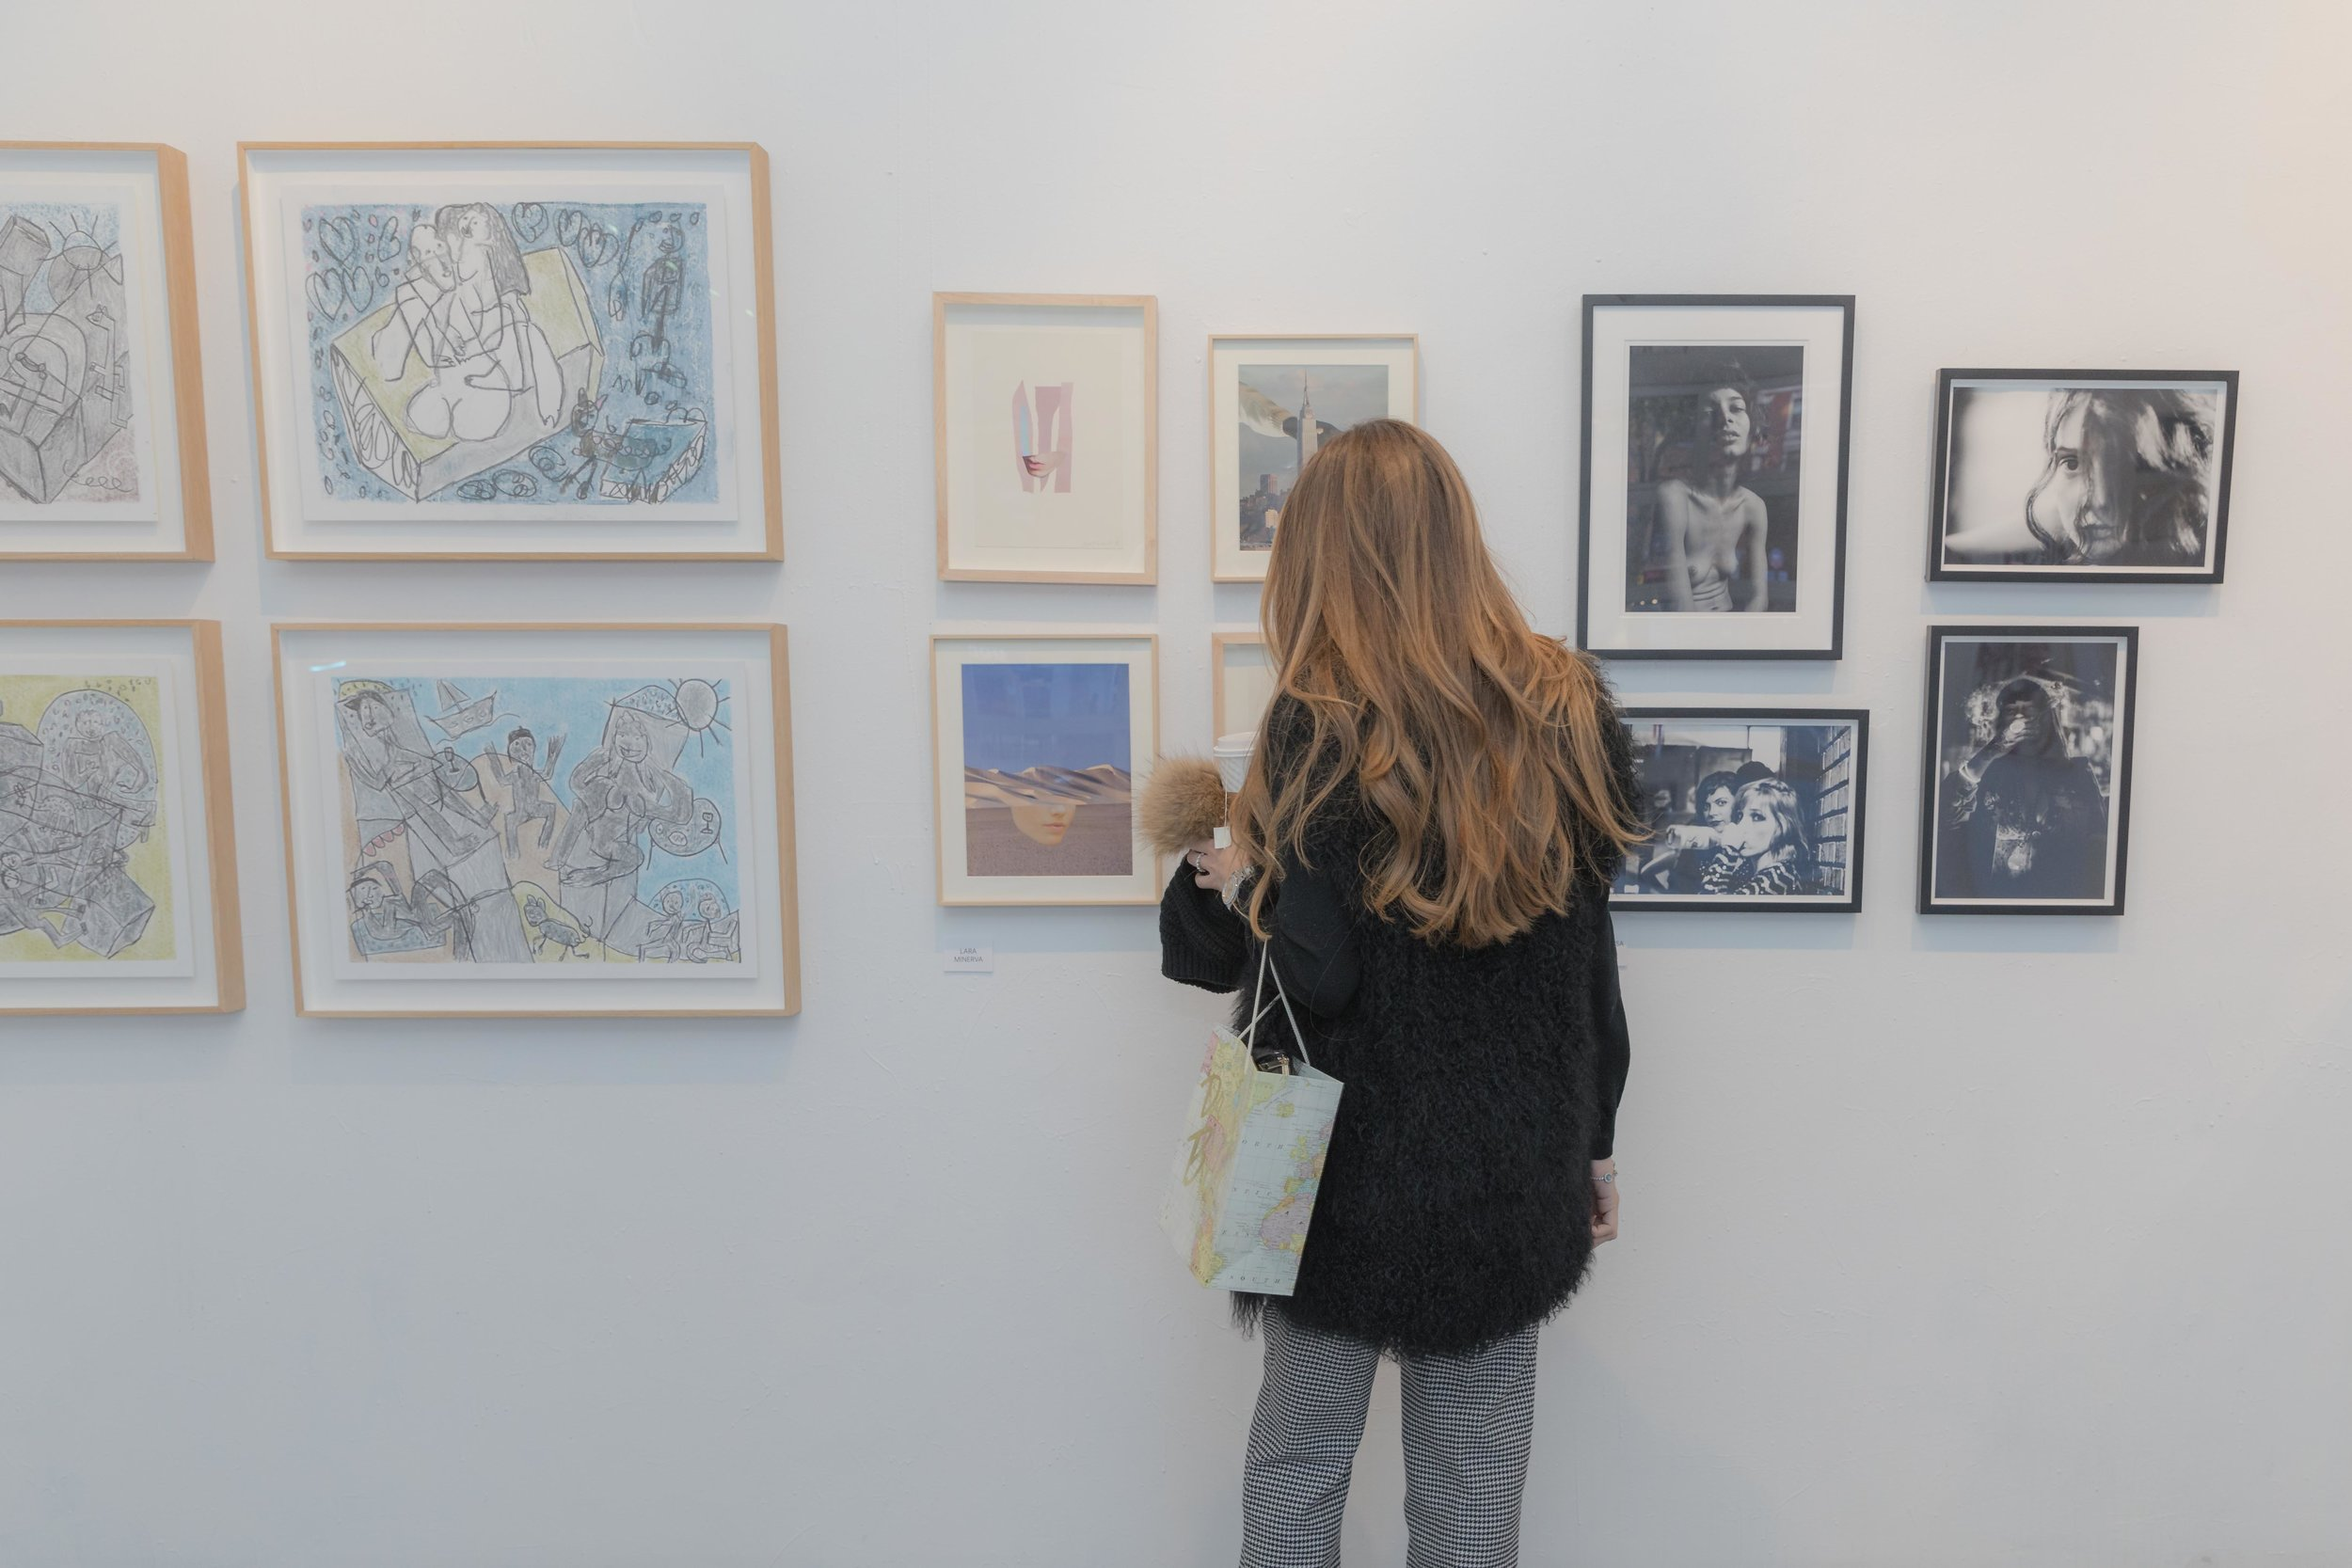 Art influencer and NYC tour guide Patricia de Picciotto admiring artwork by Ygal Gbay, Lara Minerva, and Evelyn Sosa Rojas (left to right)